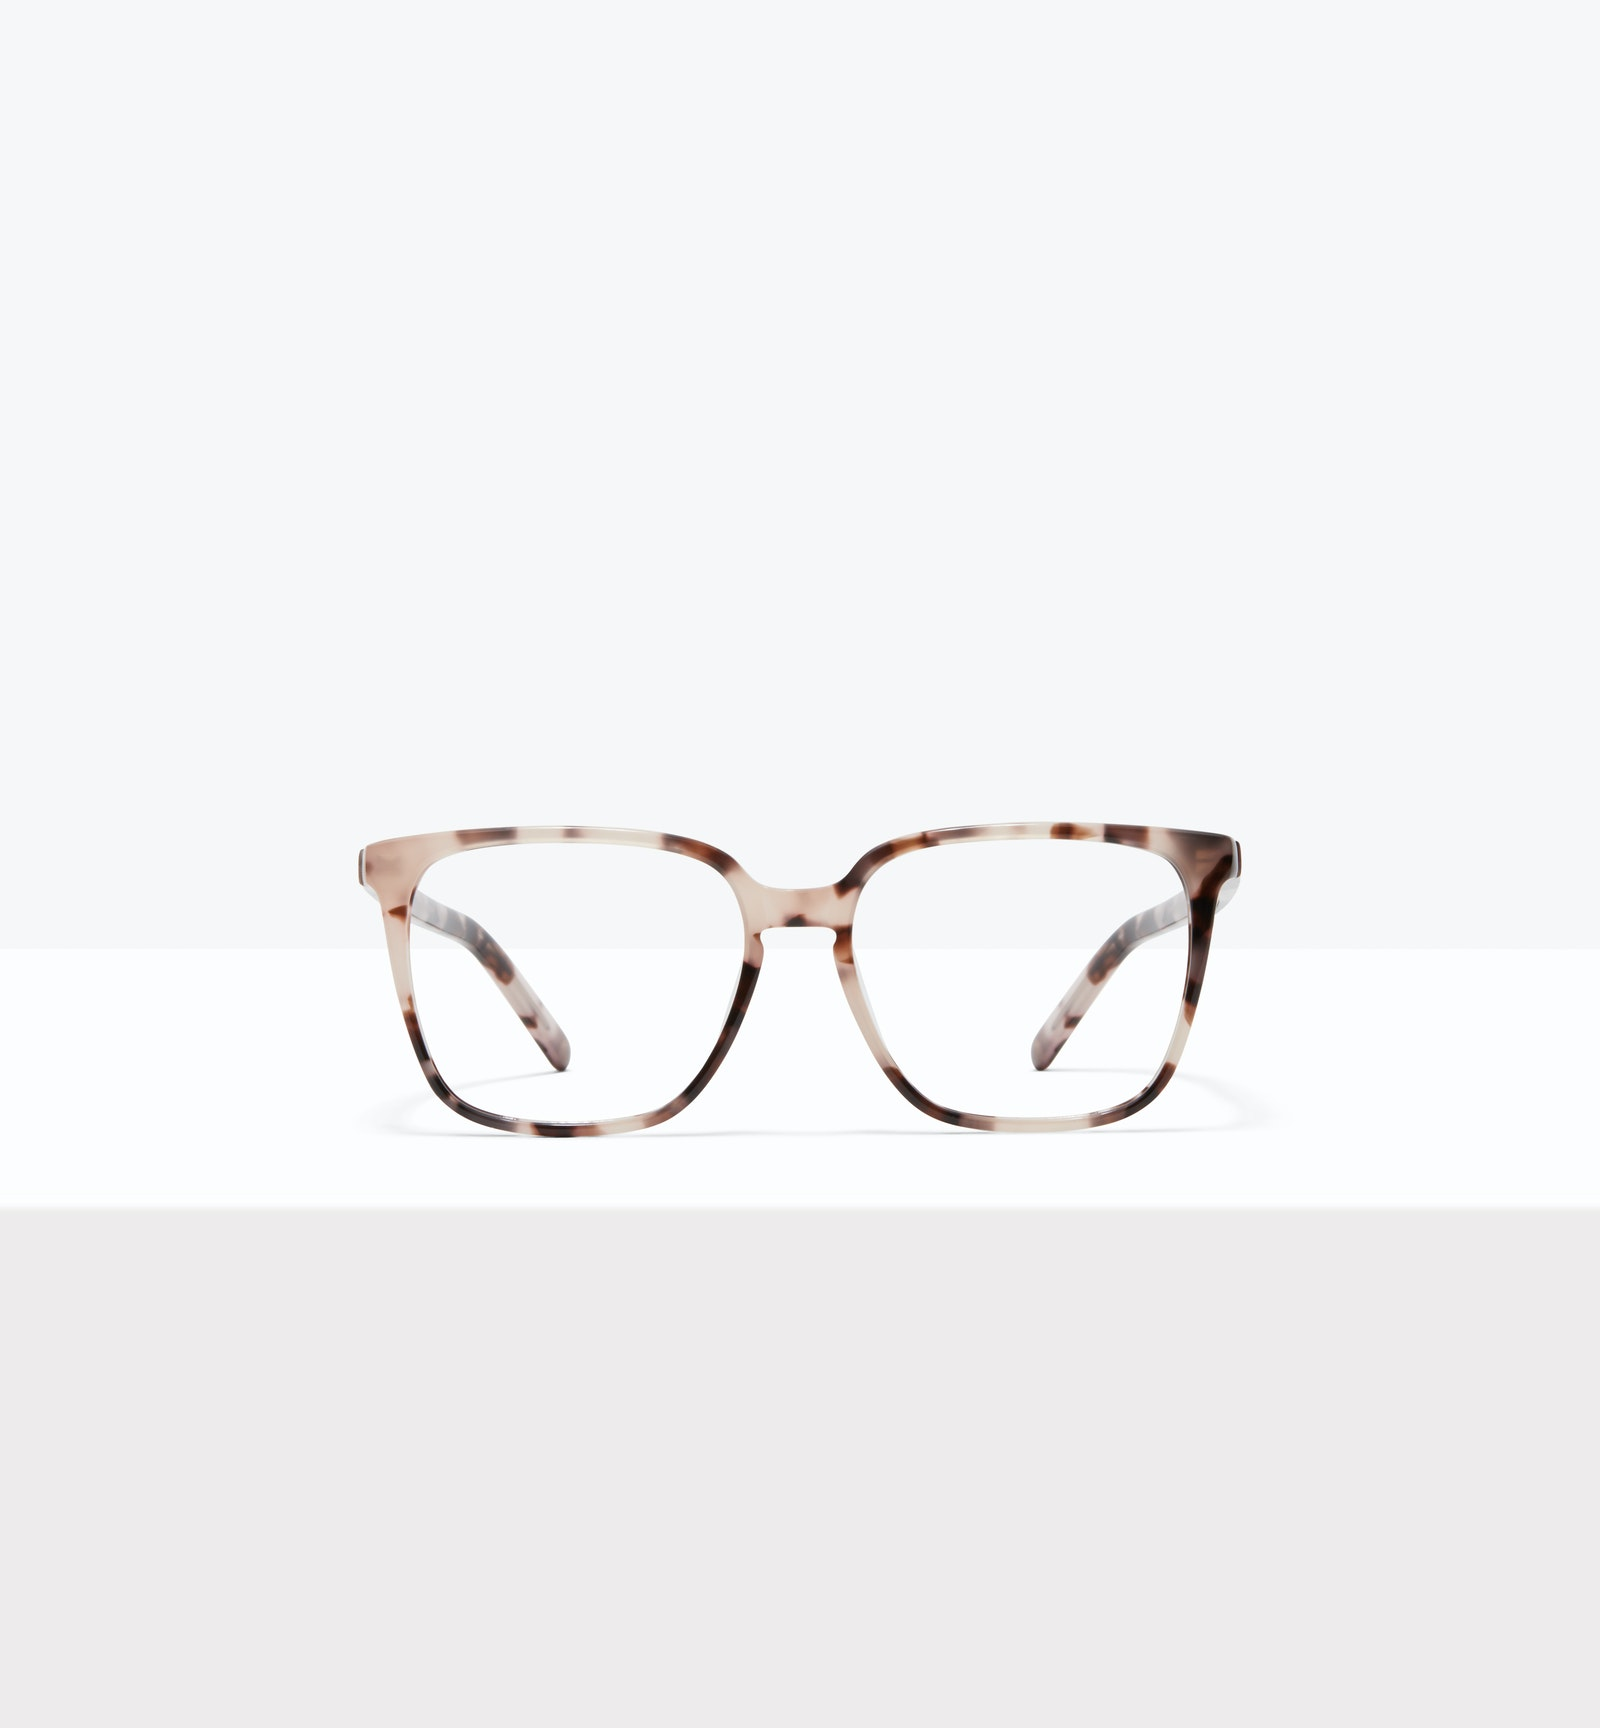 Affordable Fashion Glasses Square Eyeglasses Women Runway S Marbled Pink